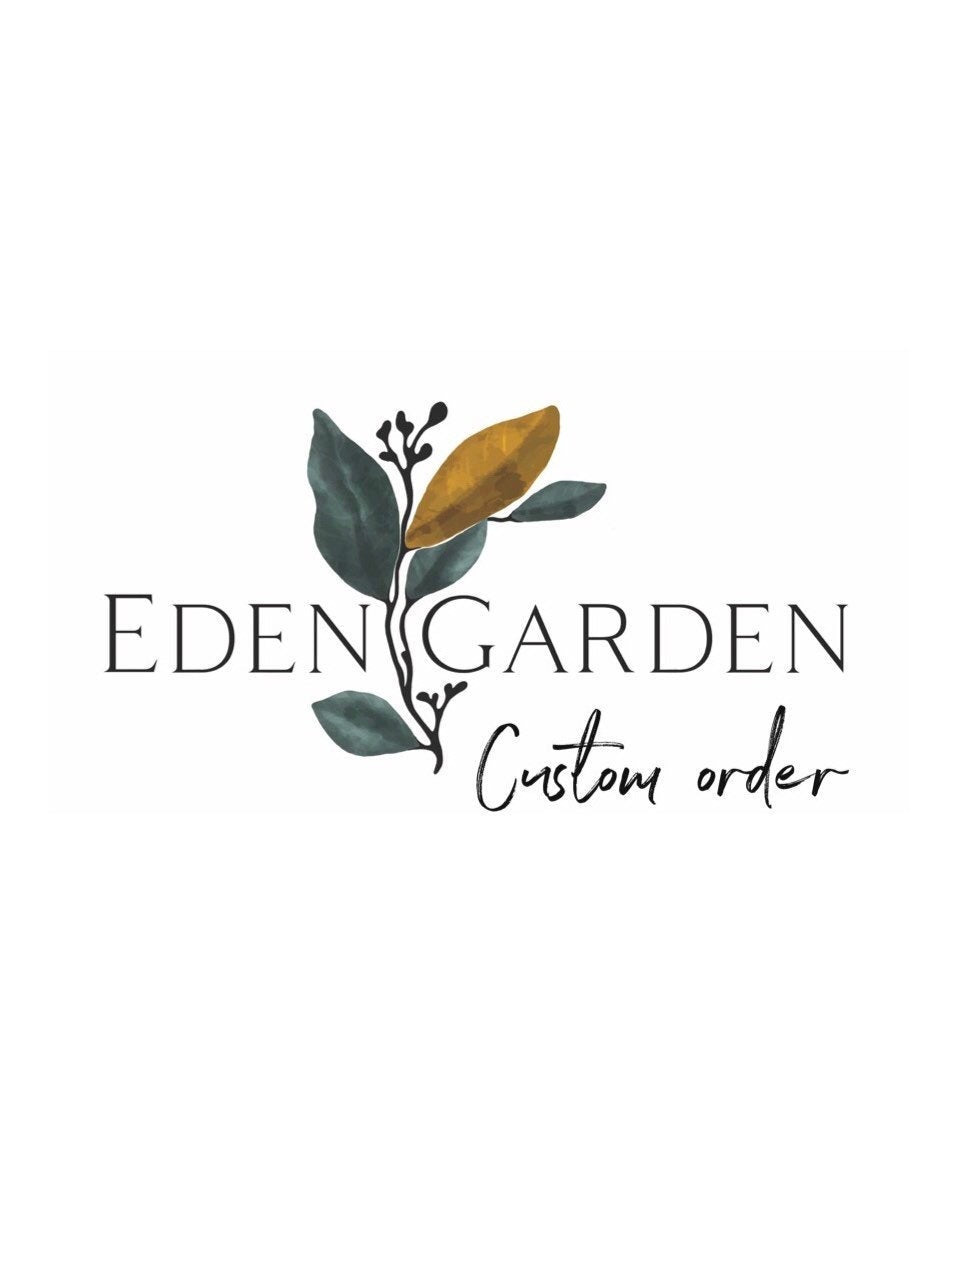 Rush order upgrade - Eden Garden Jewelry